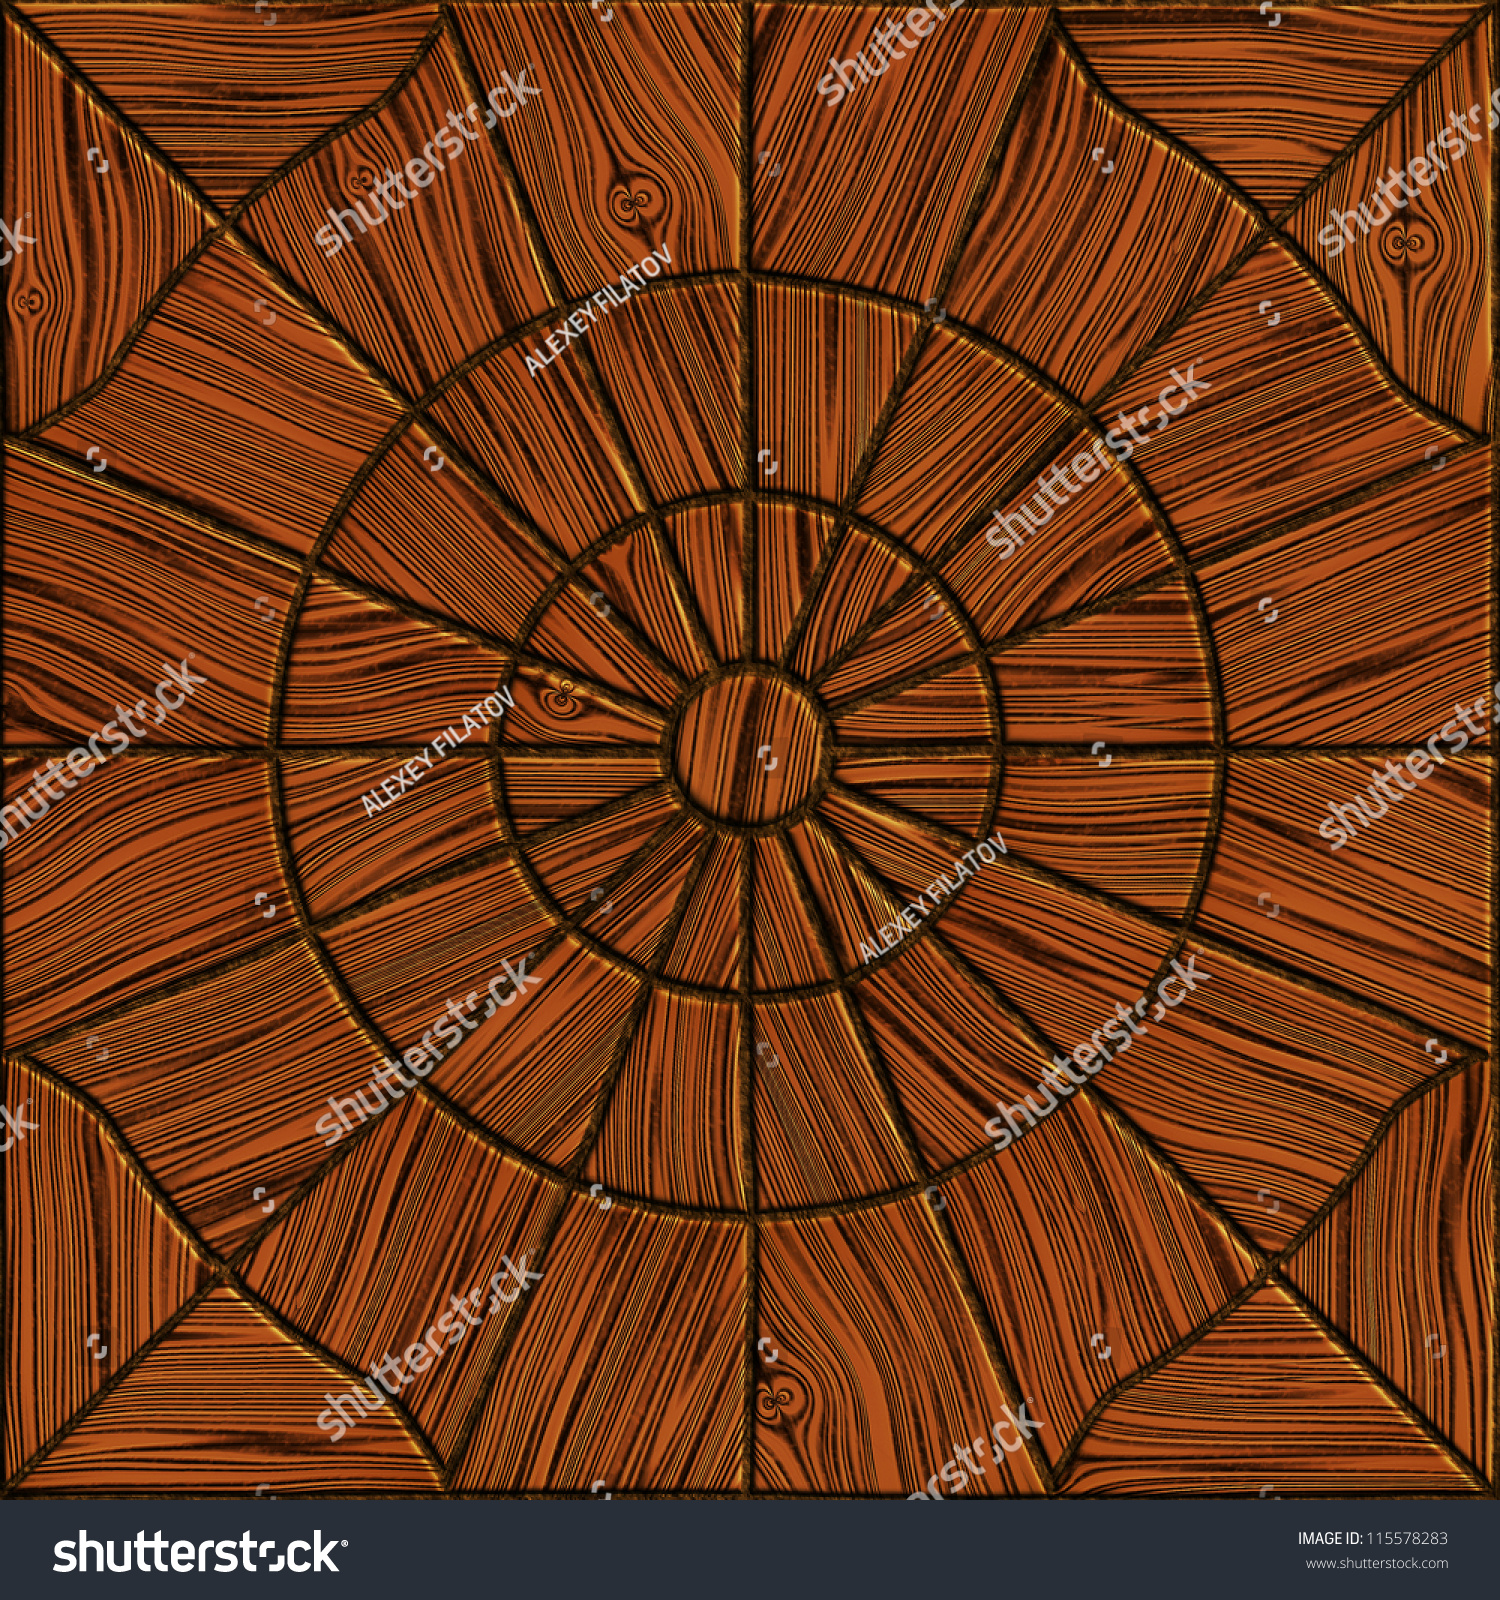 Seamless texture wood laminate stock photo